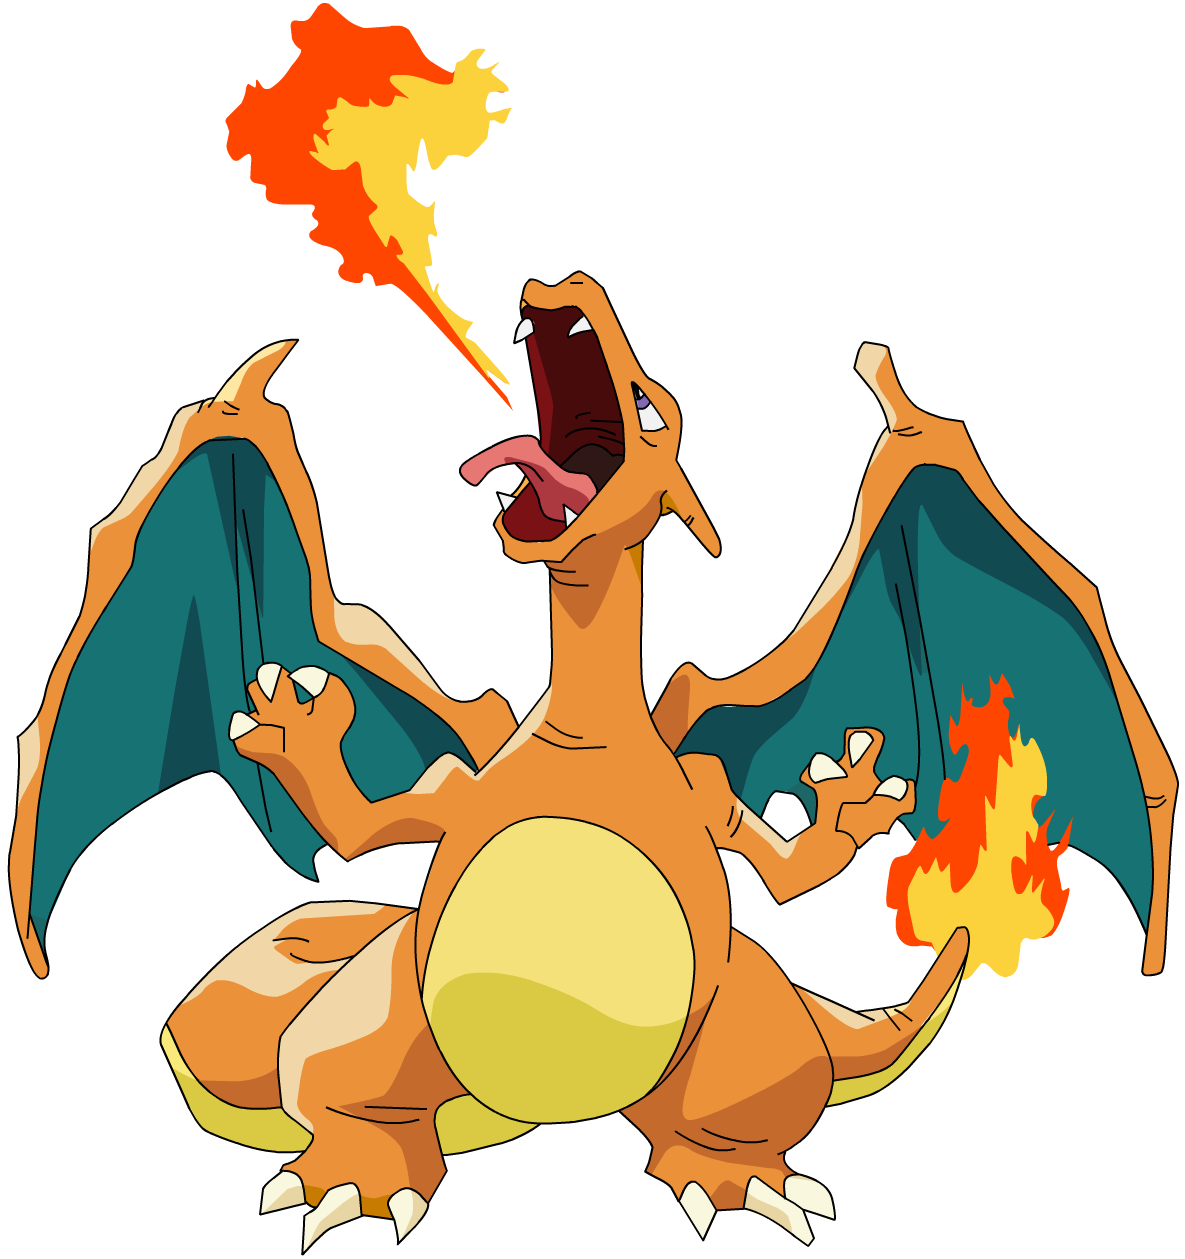 Charizard | Pokémon Wiki | FANDOM powered by Wikia